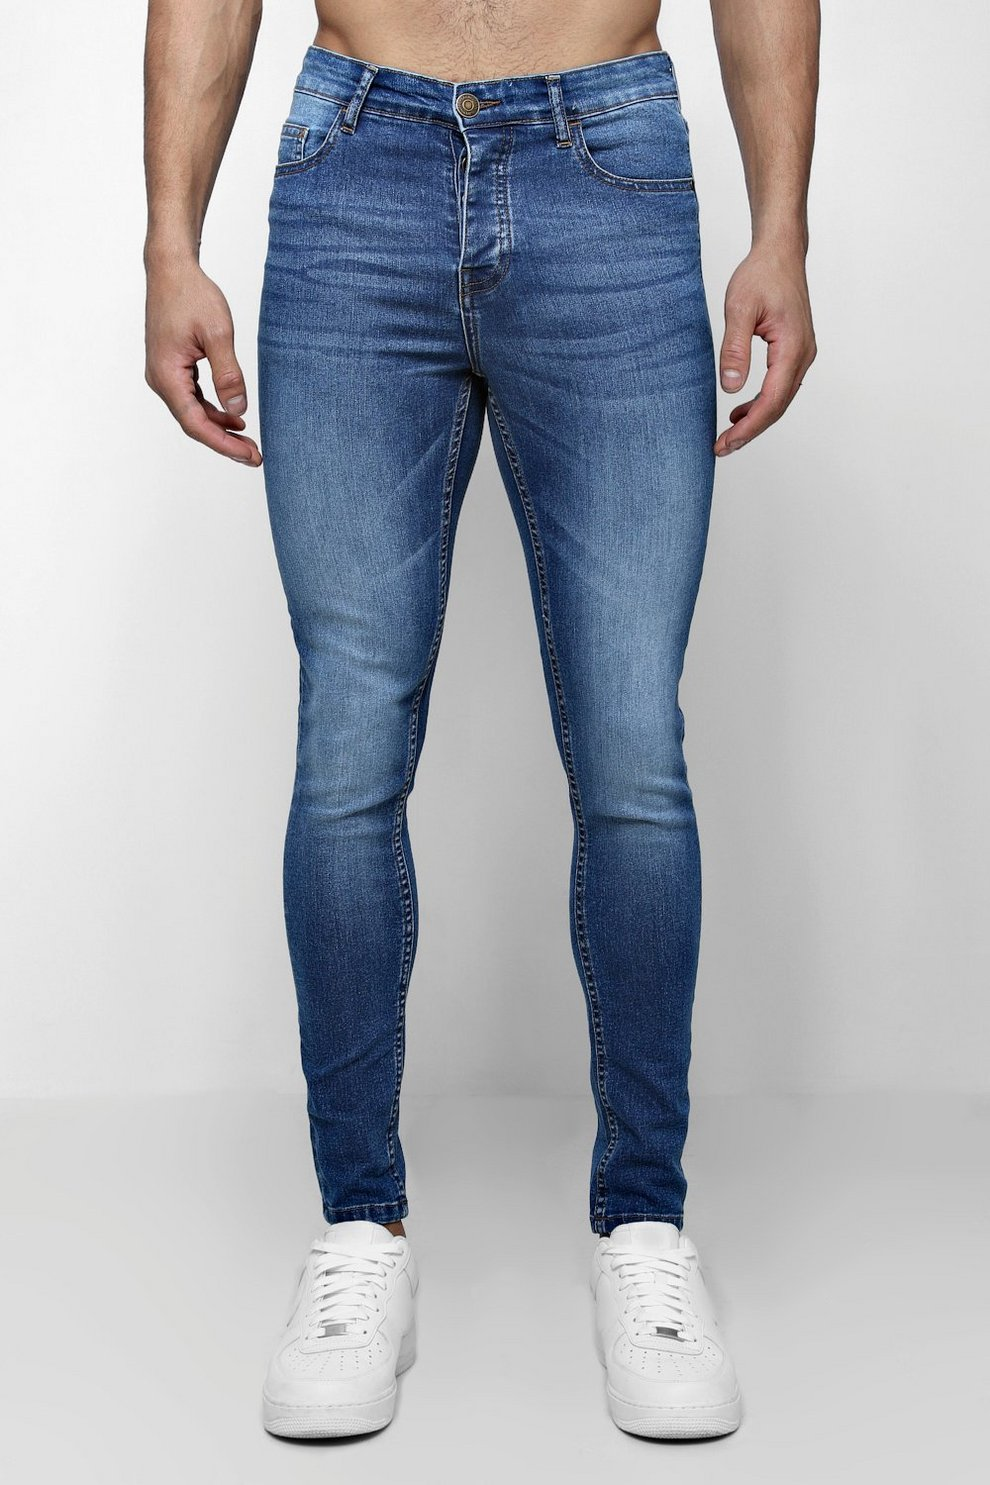 6e82e8d9c33a7 Spray On Skinny Jeans in blauer Waschung